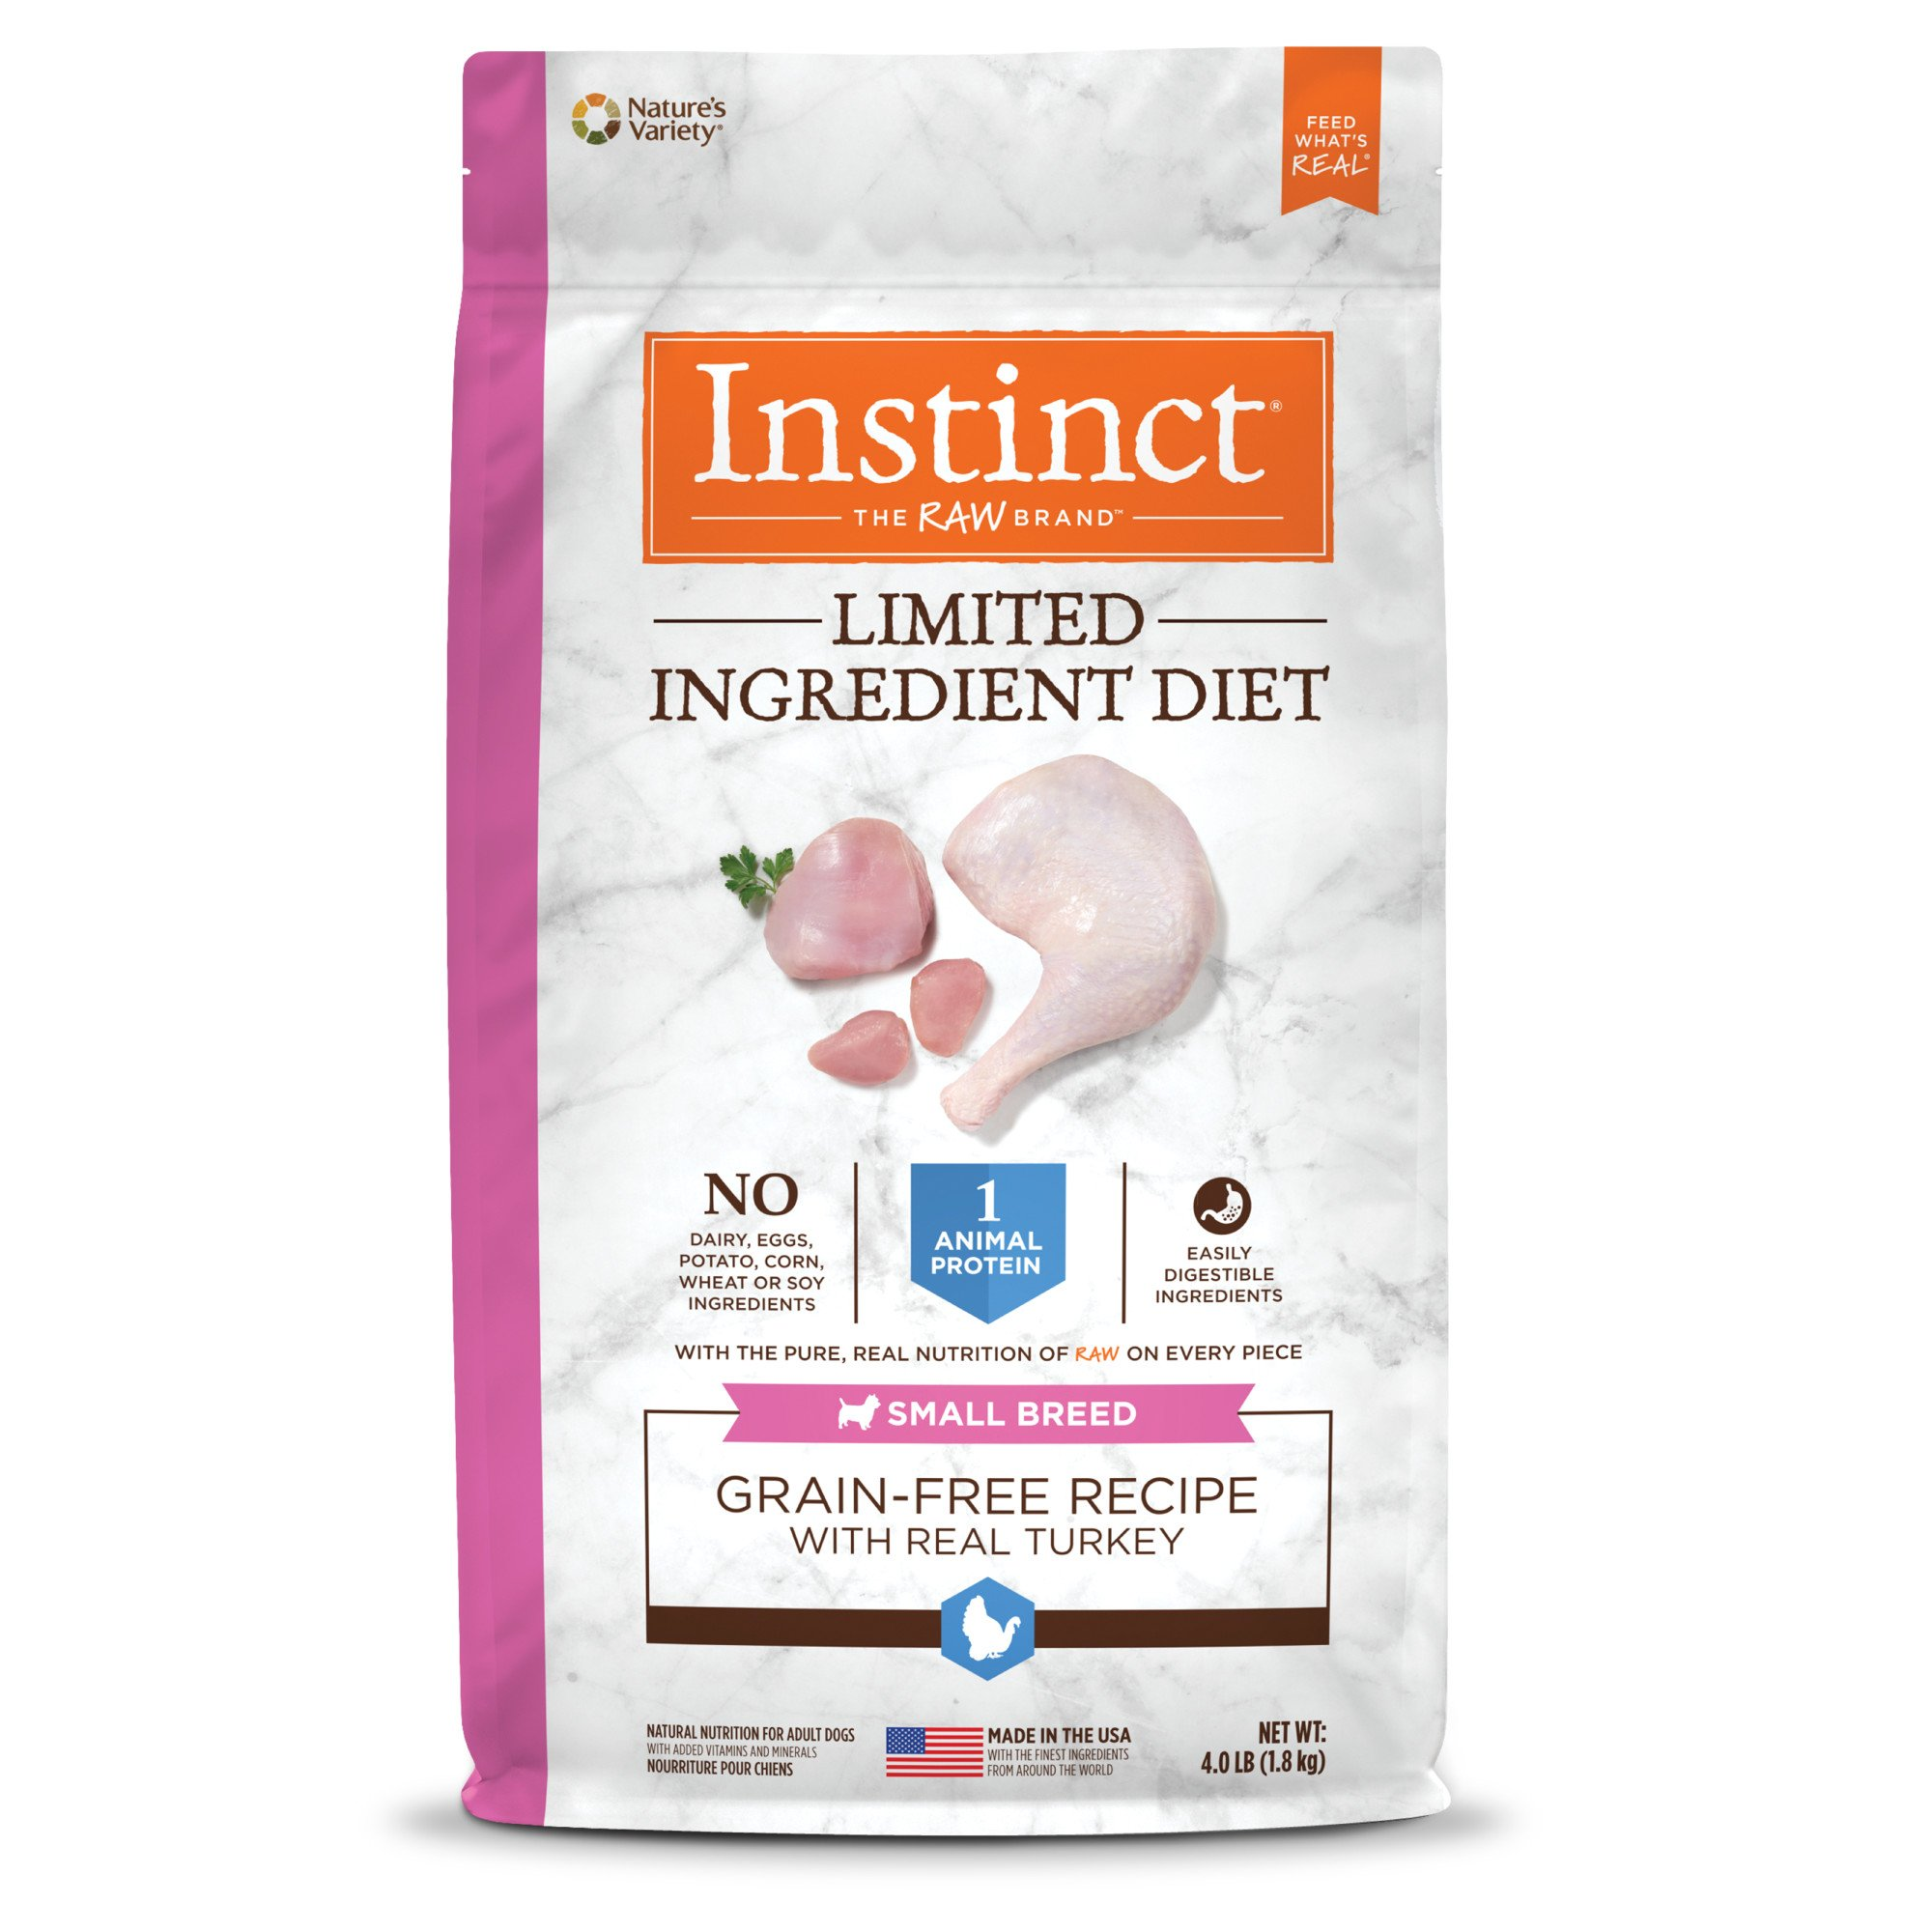 Instinct Limited Ingredient Diet Small Breed Grain Free Recipe with Turkey Natural Dry Dog Food by Nature's Variety, 4 lbs.